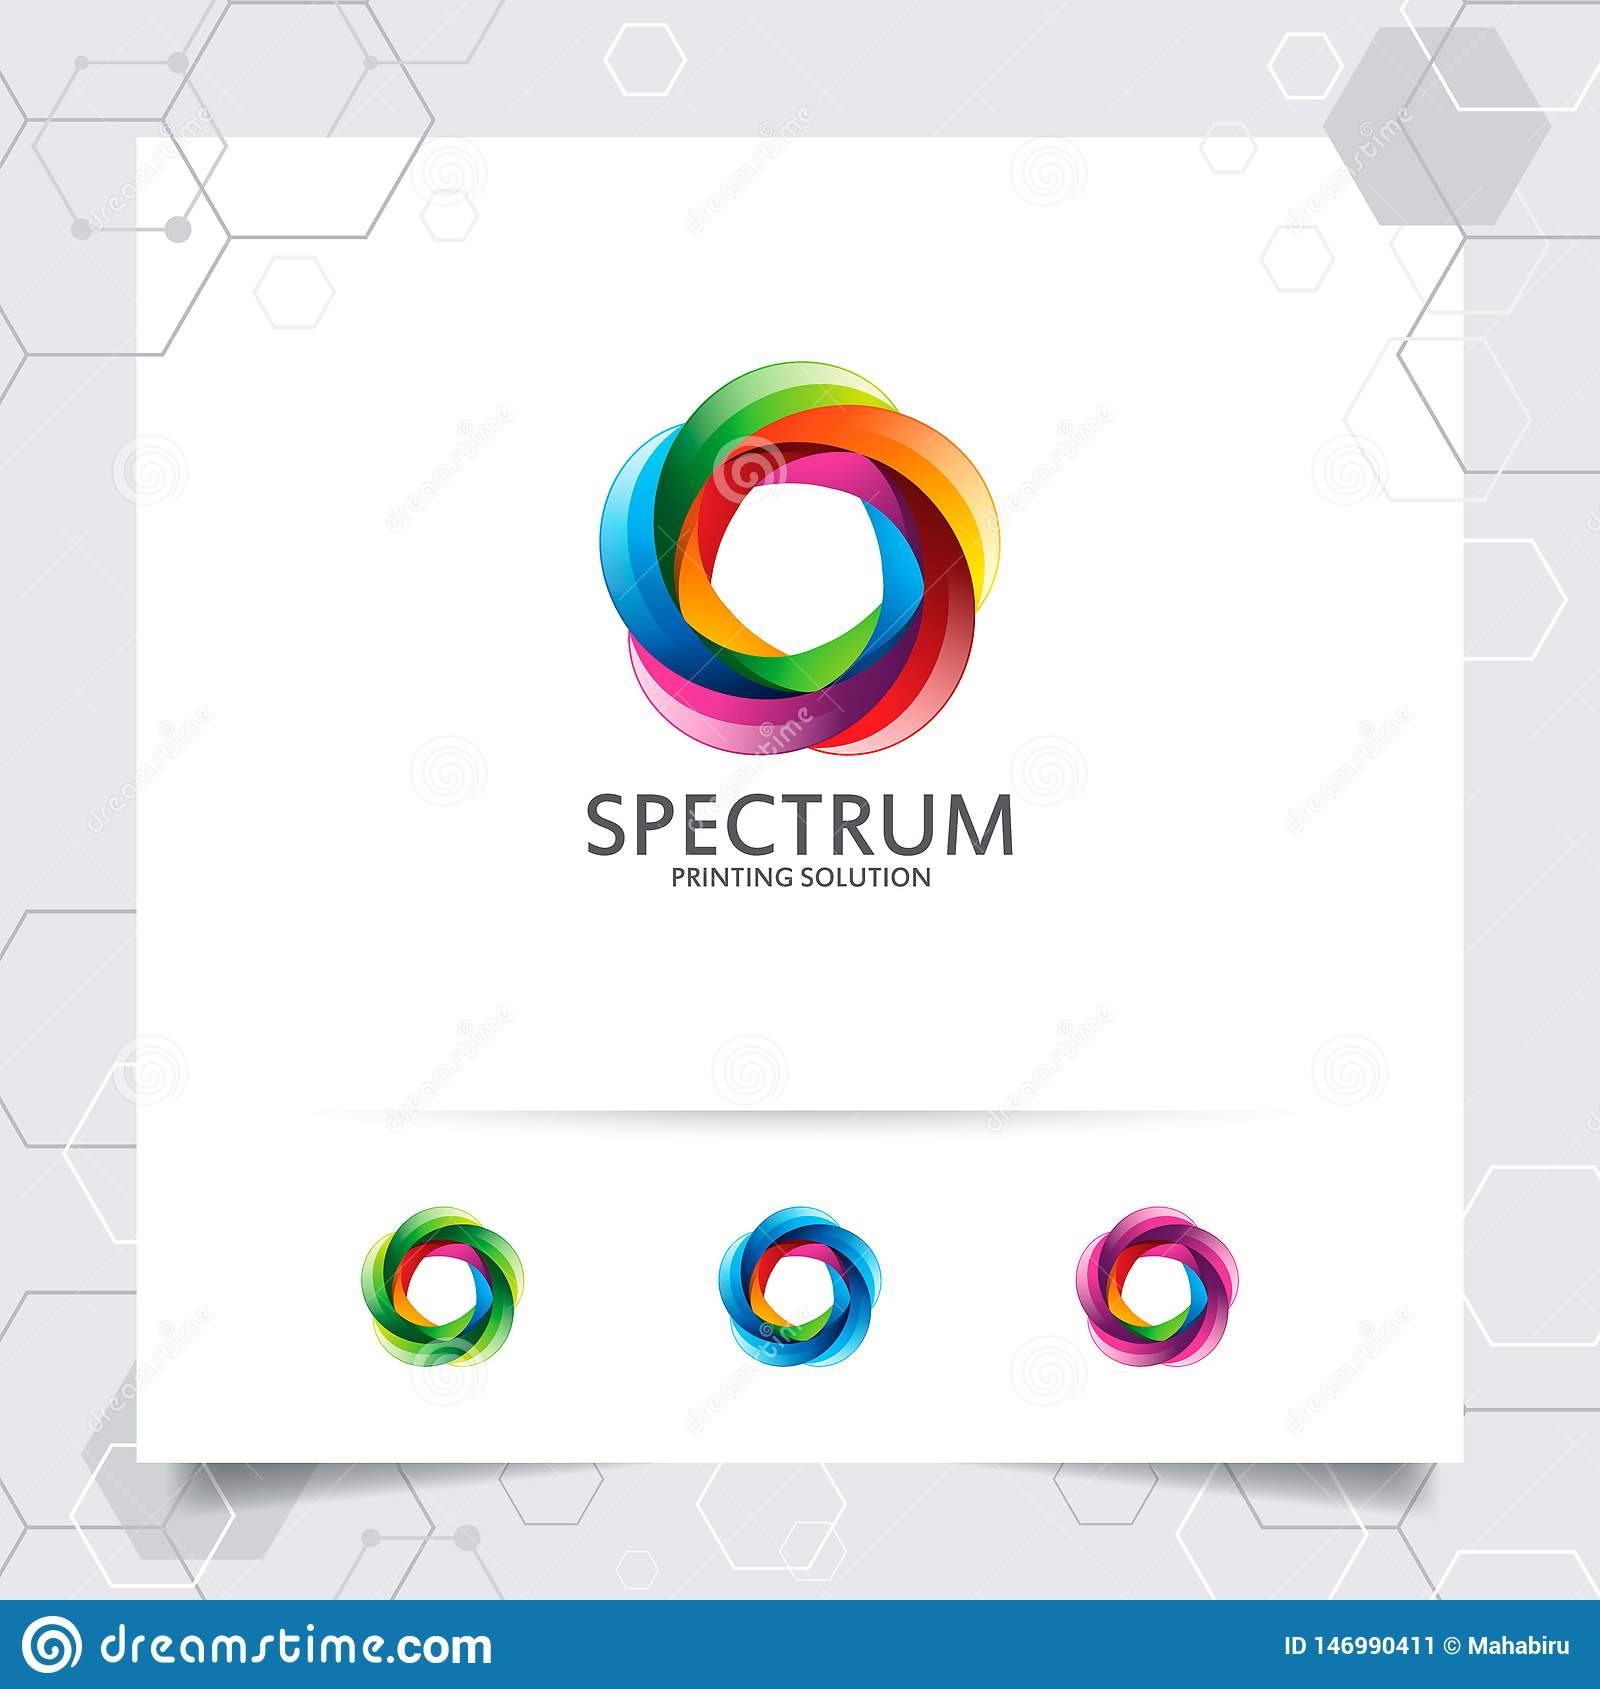 Colorful Circle Logo Design With Concept Of 3d Geometric Circle Abstract Colorful Vector Element Used For Printing And Stock Vector Illustration Of Geometric Background 146990411